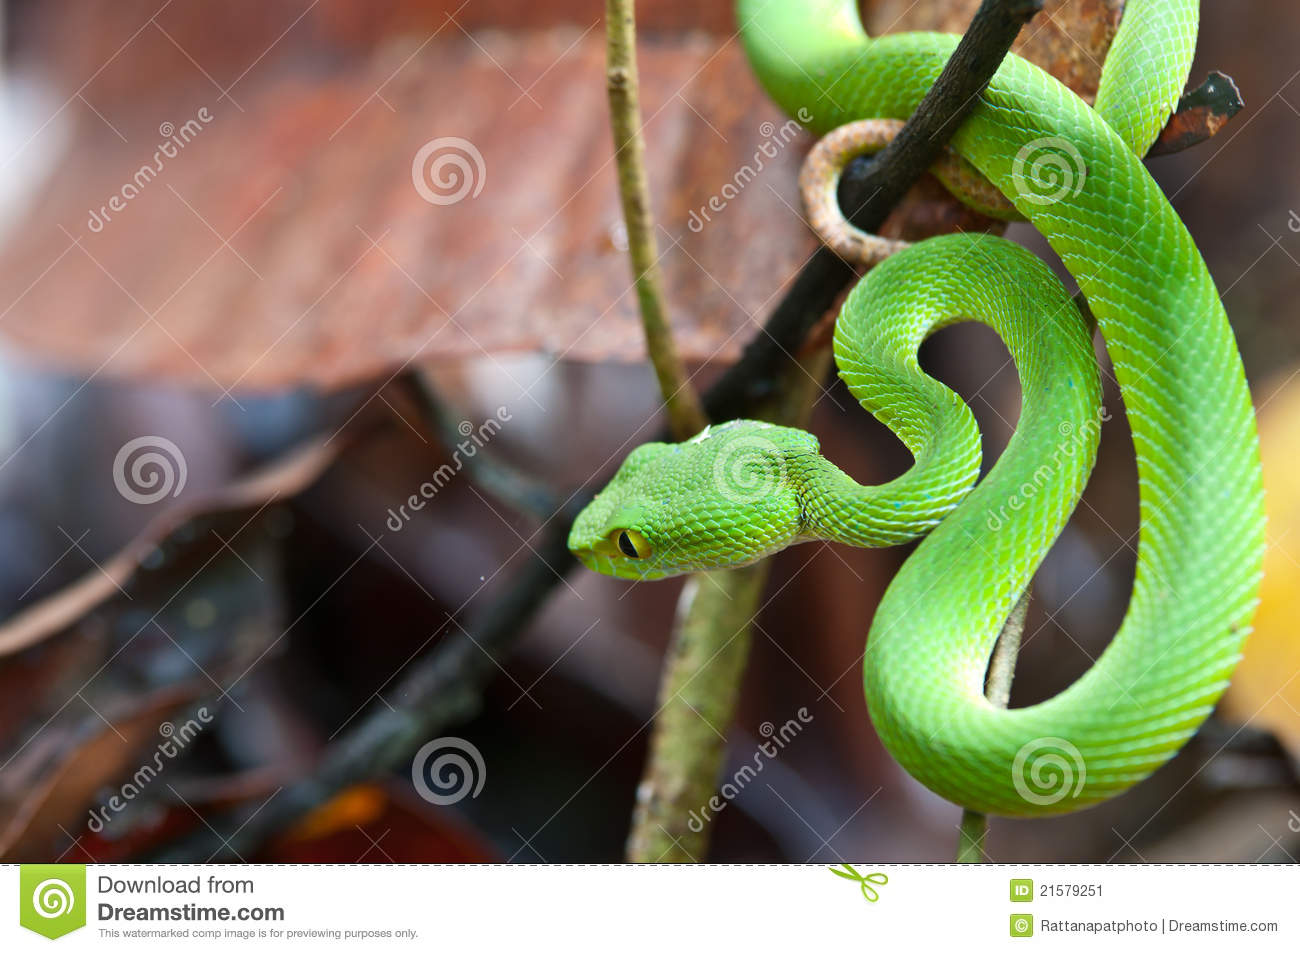 Green Pit Viper clipart #11, Download drawings